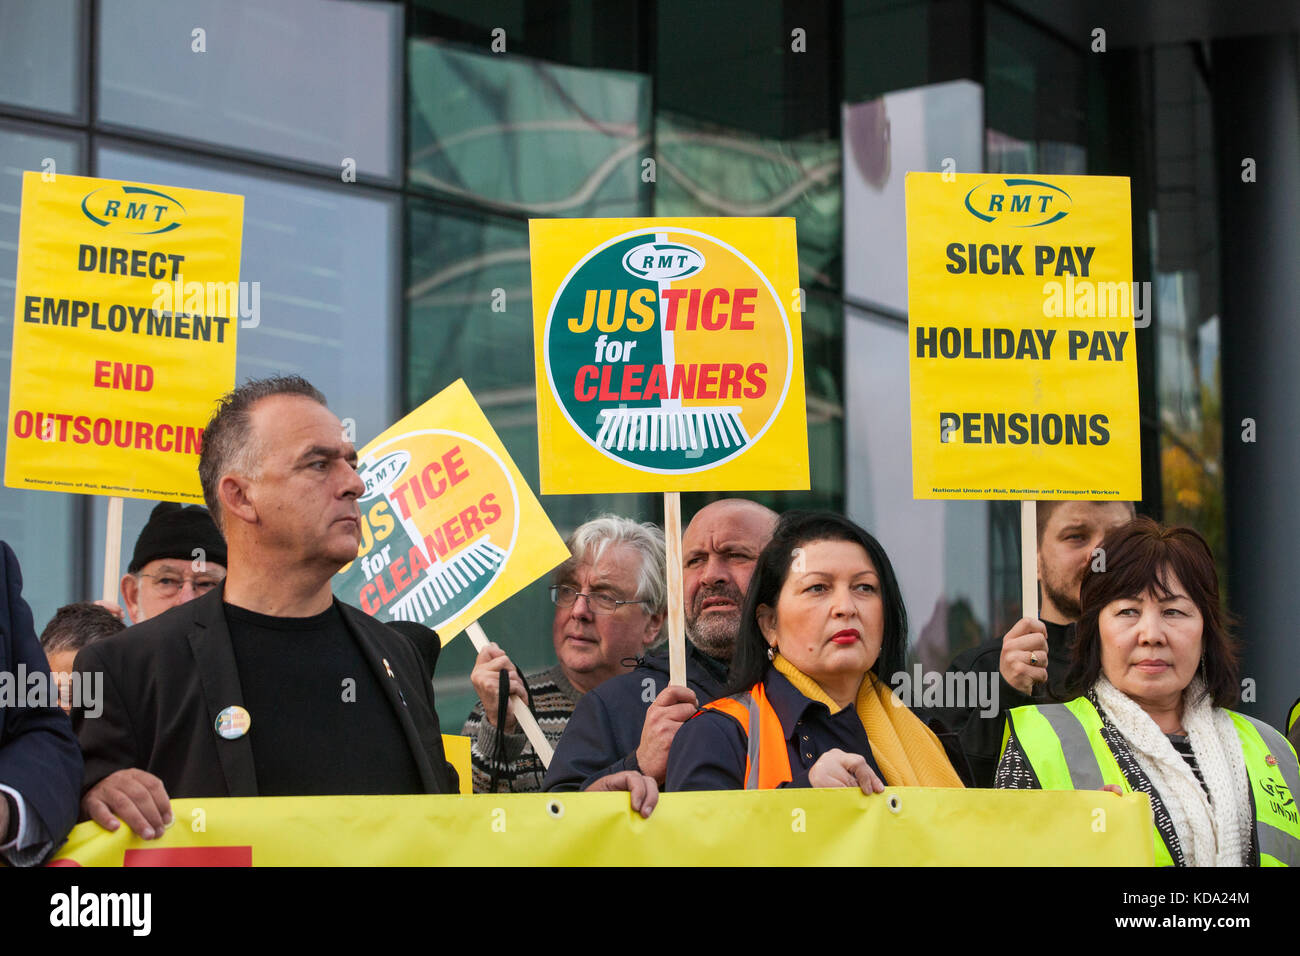 London, UK. 12th Oct, 2017. London Underground cleaners from the Rail, Maritime and Transport (RMT) trade union - Stock Image